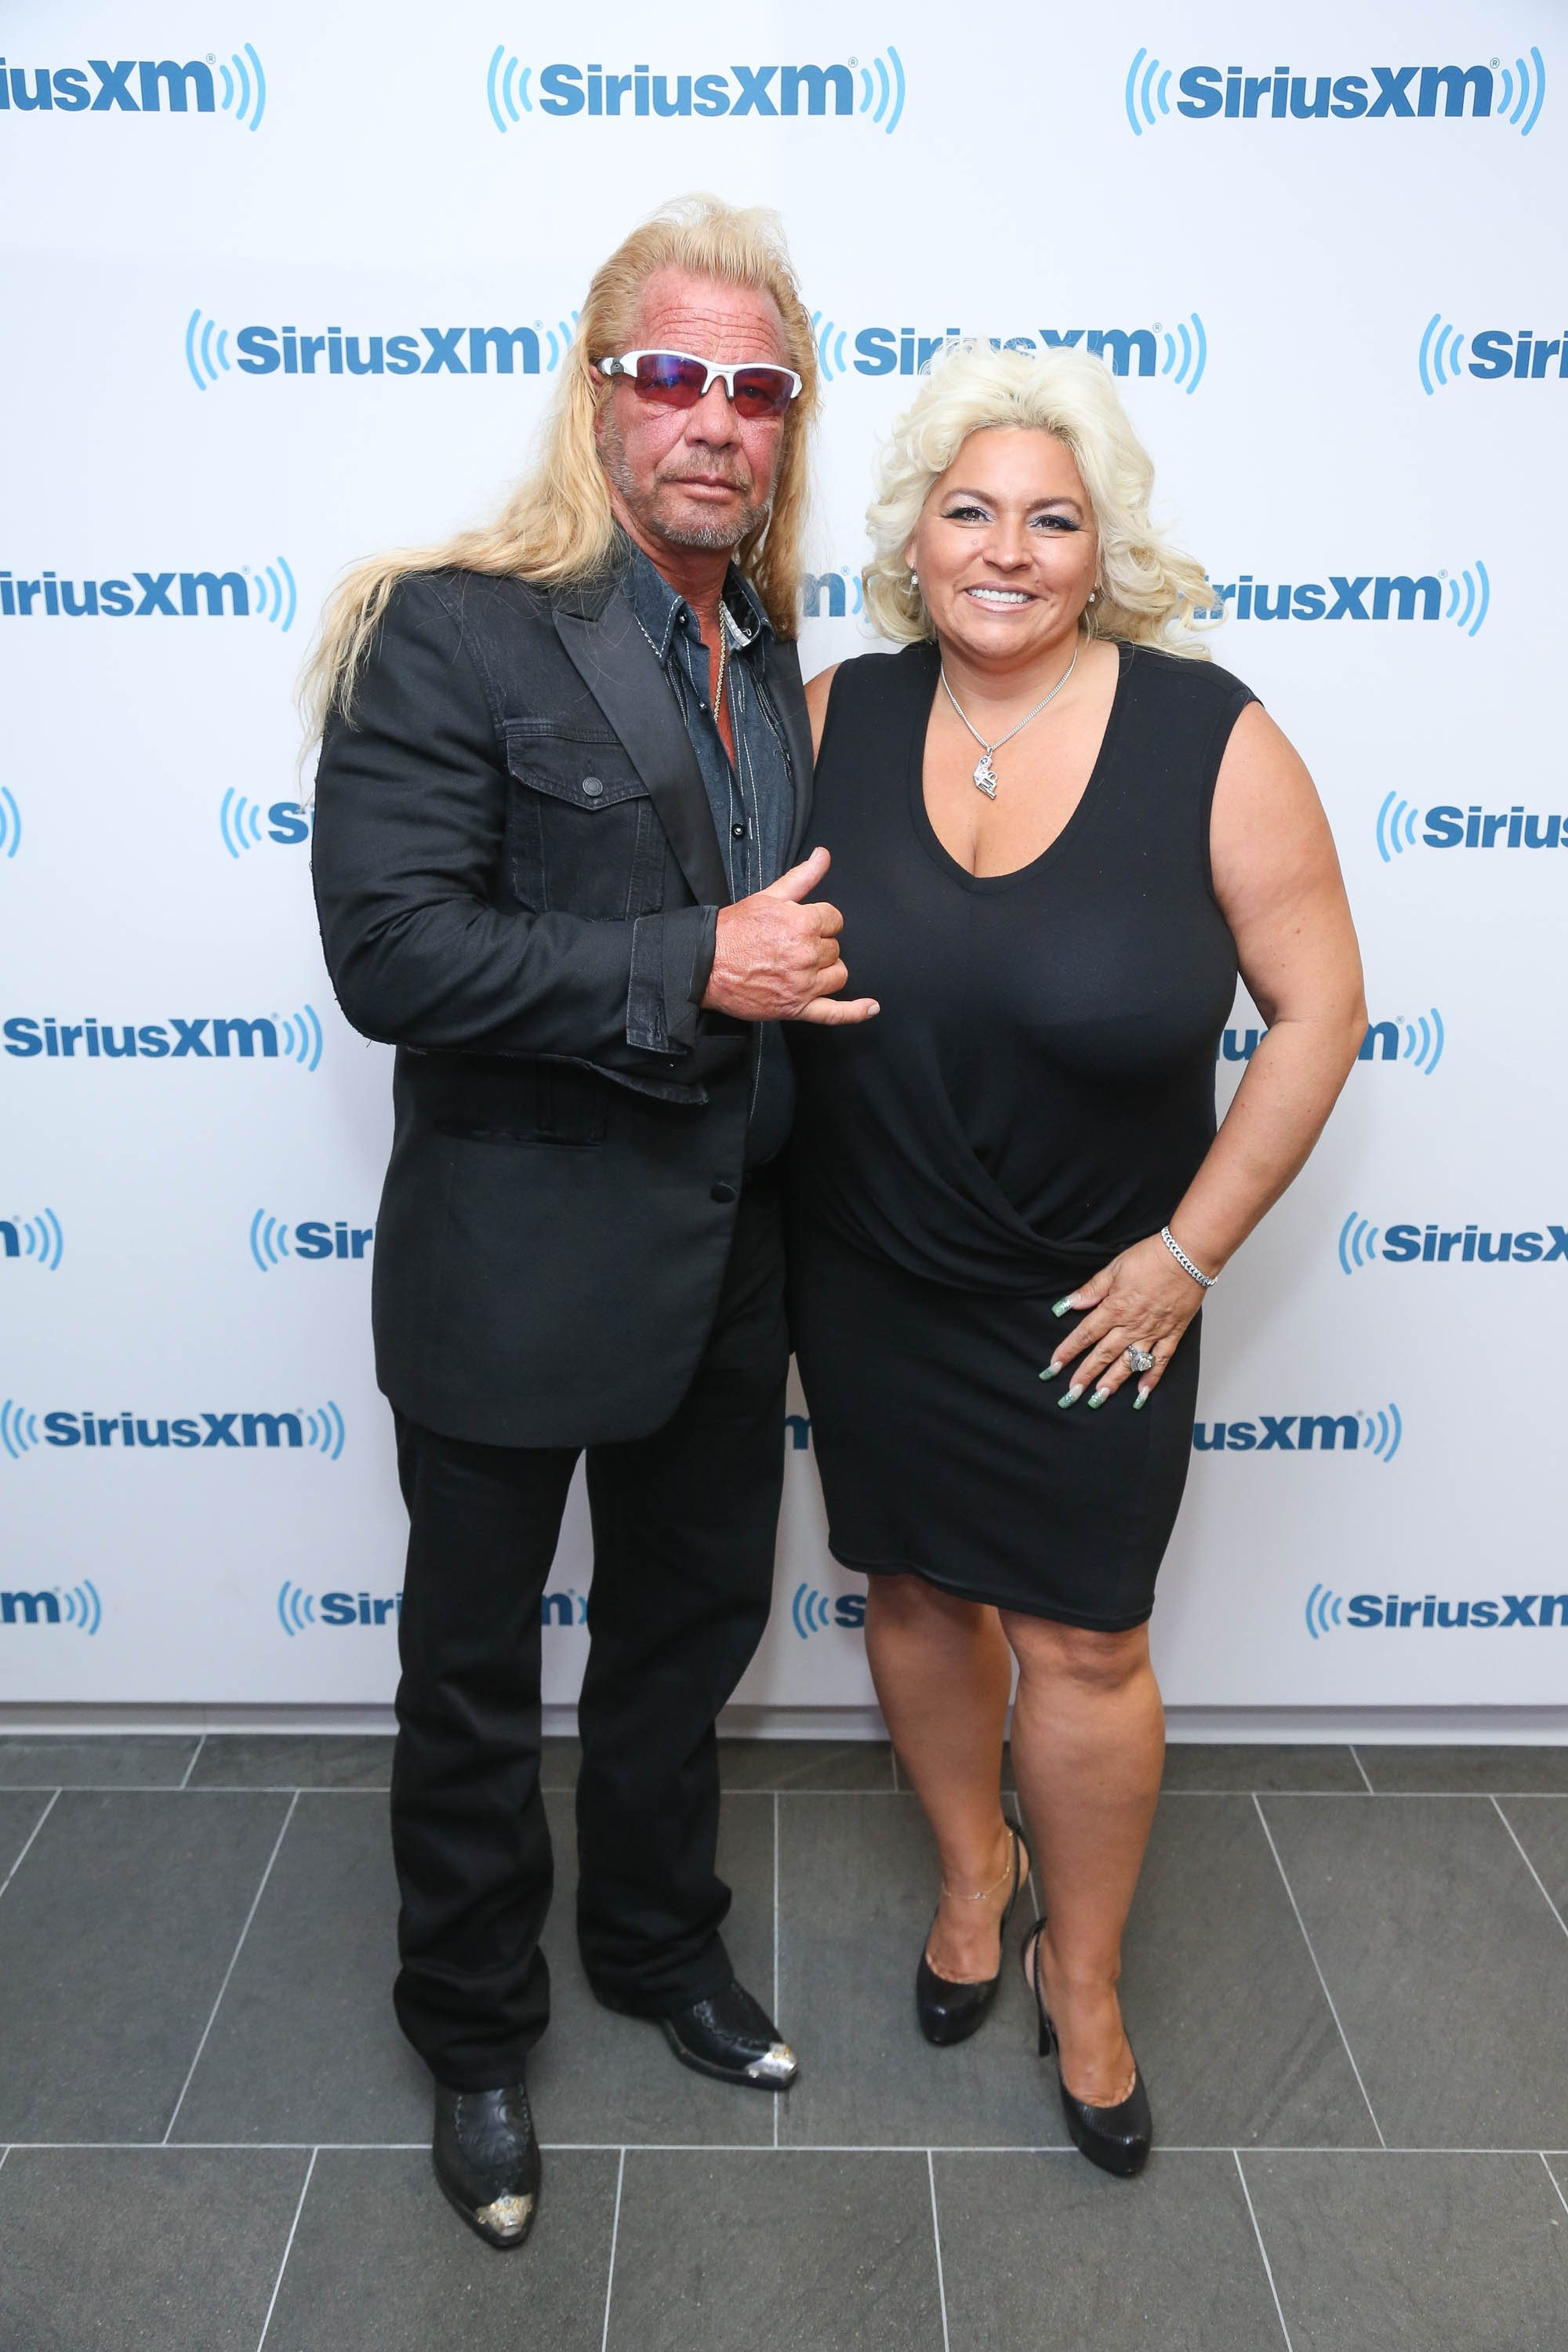 Duane 'Dog' and Beth Chapman visit at SiriusXM Studios on June 9, 2014 in New York City   Photo: Getty Images